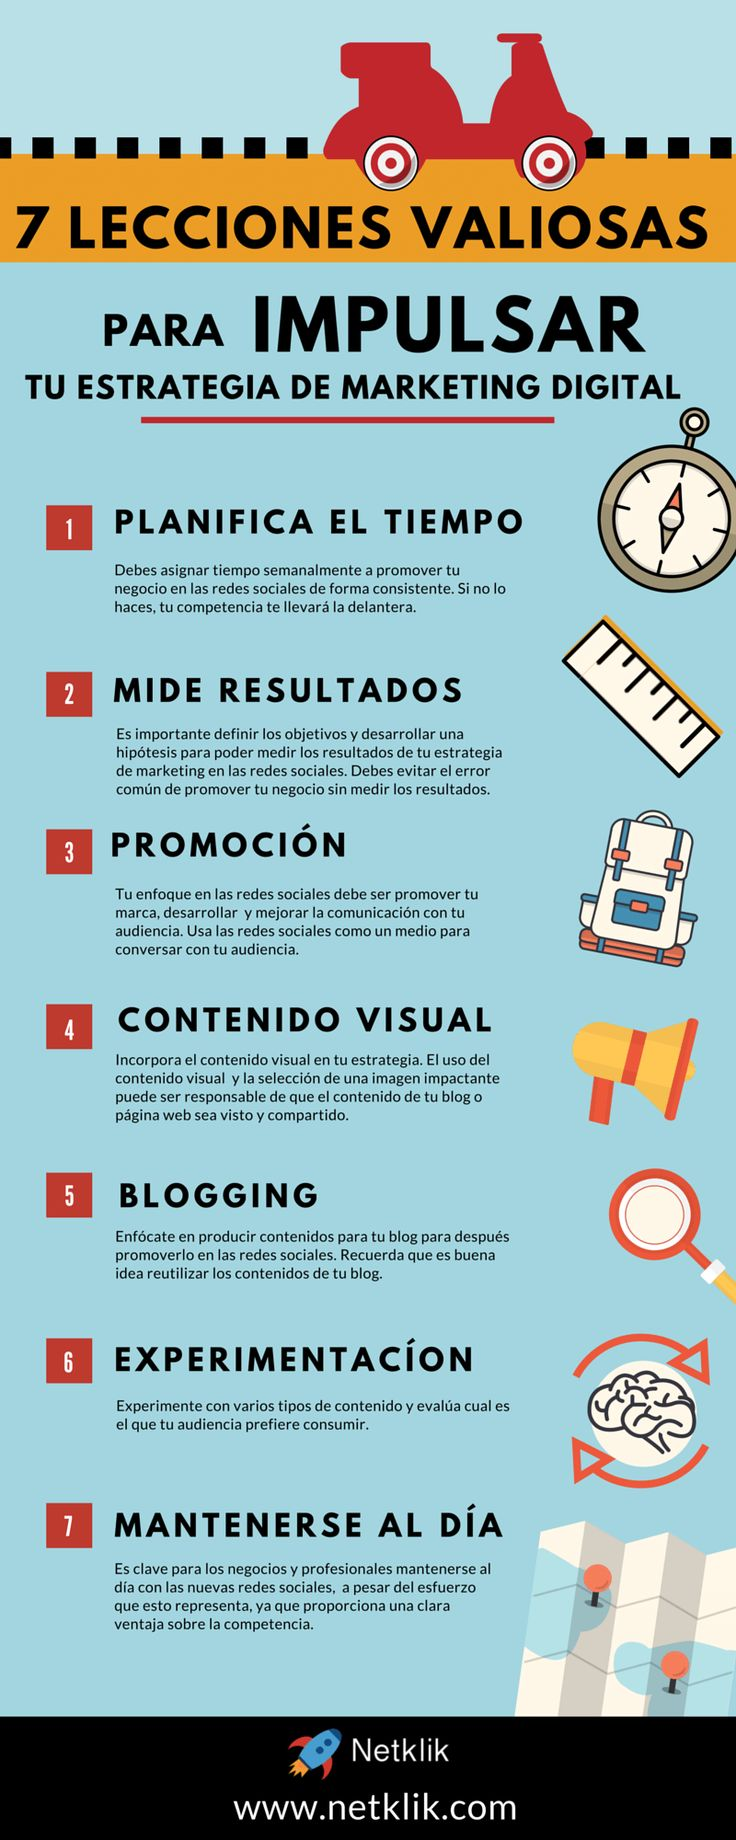 Descubre las 7 lecciones para impulsar tu estrategia de marketing digital #infografia #estrategiamarketingdigital #infographic